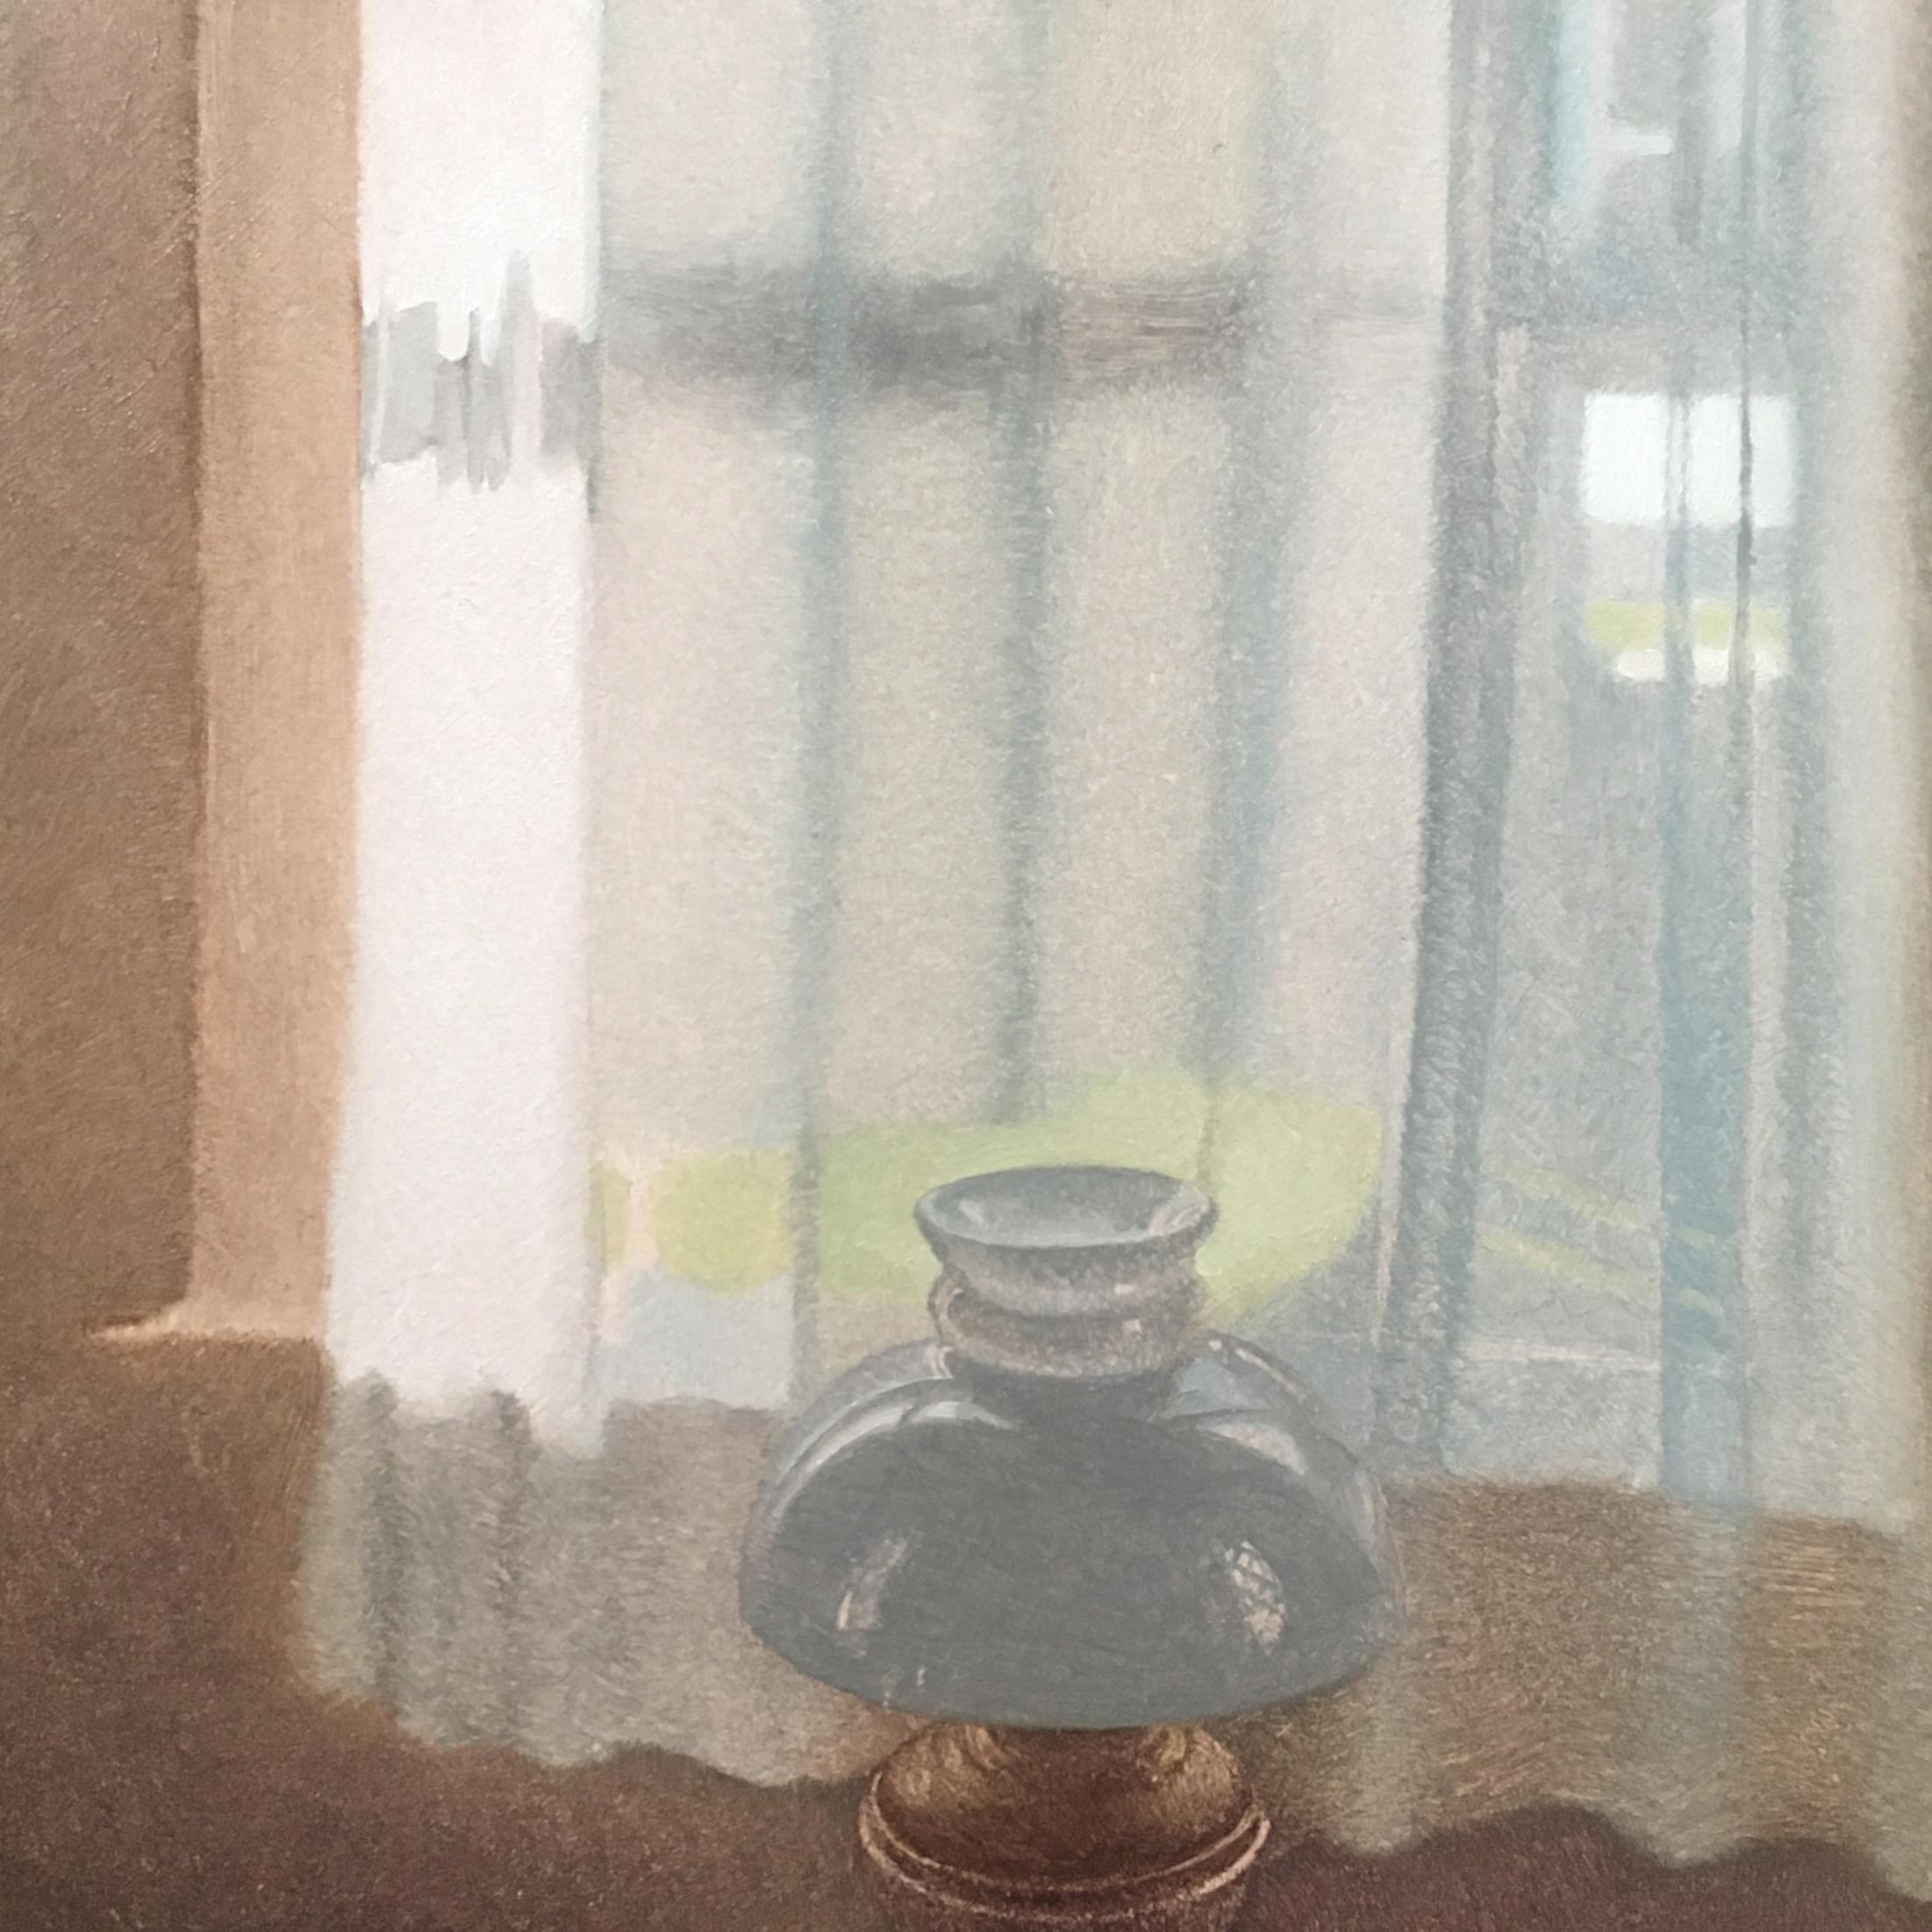 Baumgarten Lamp by Window Study 2019